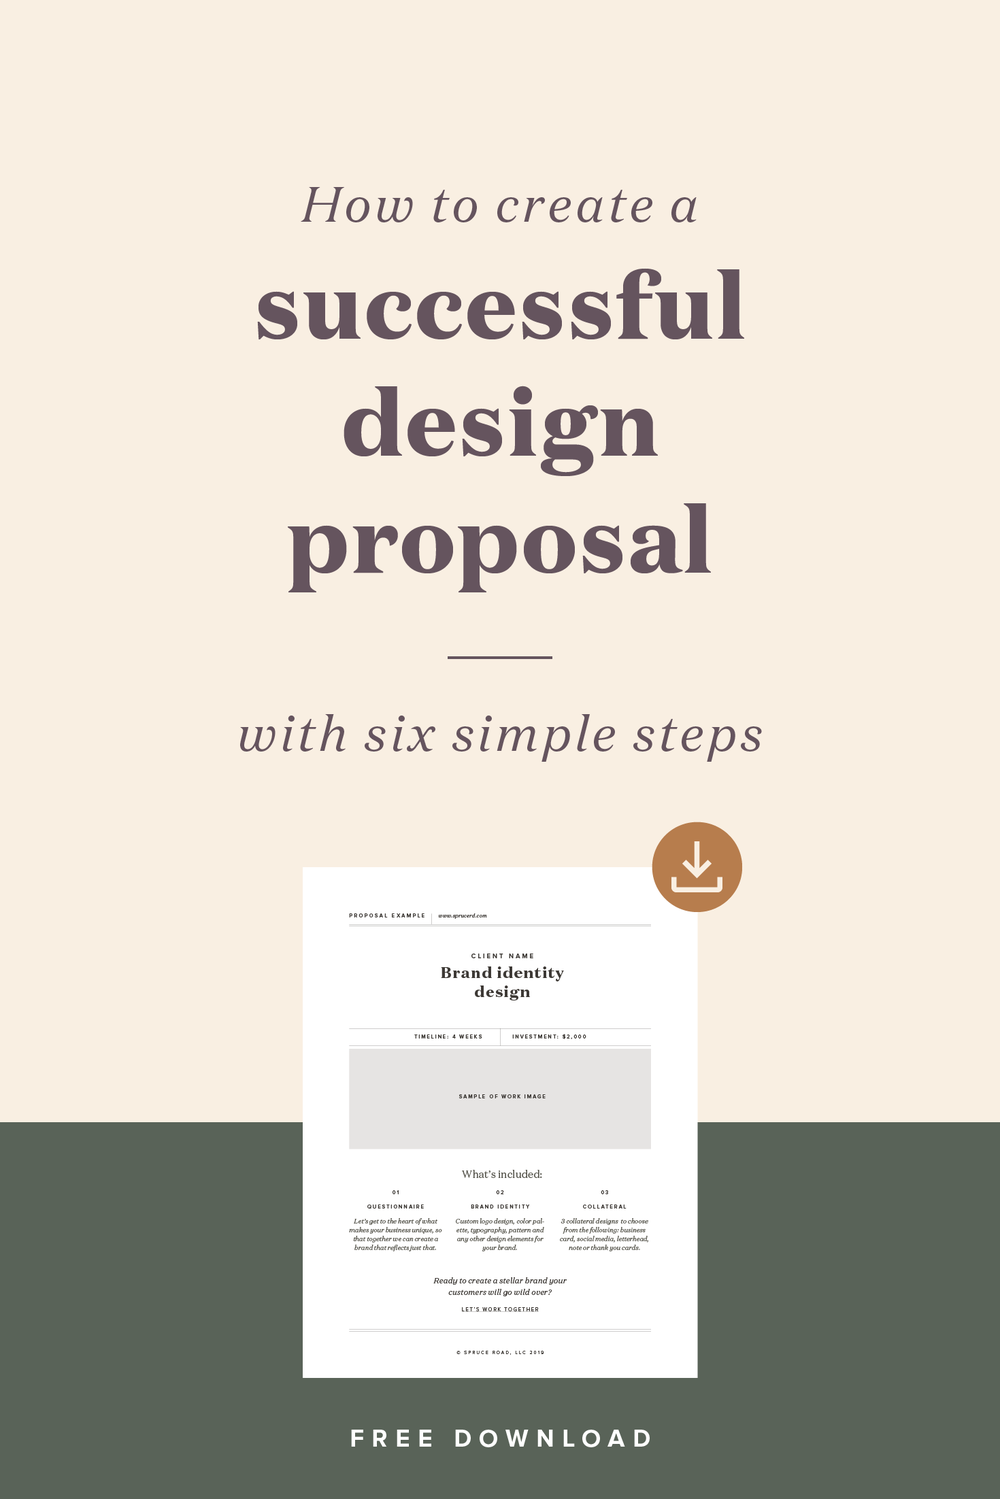 How to create a successful design proposal — Spruce Rd.